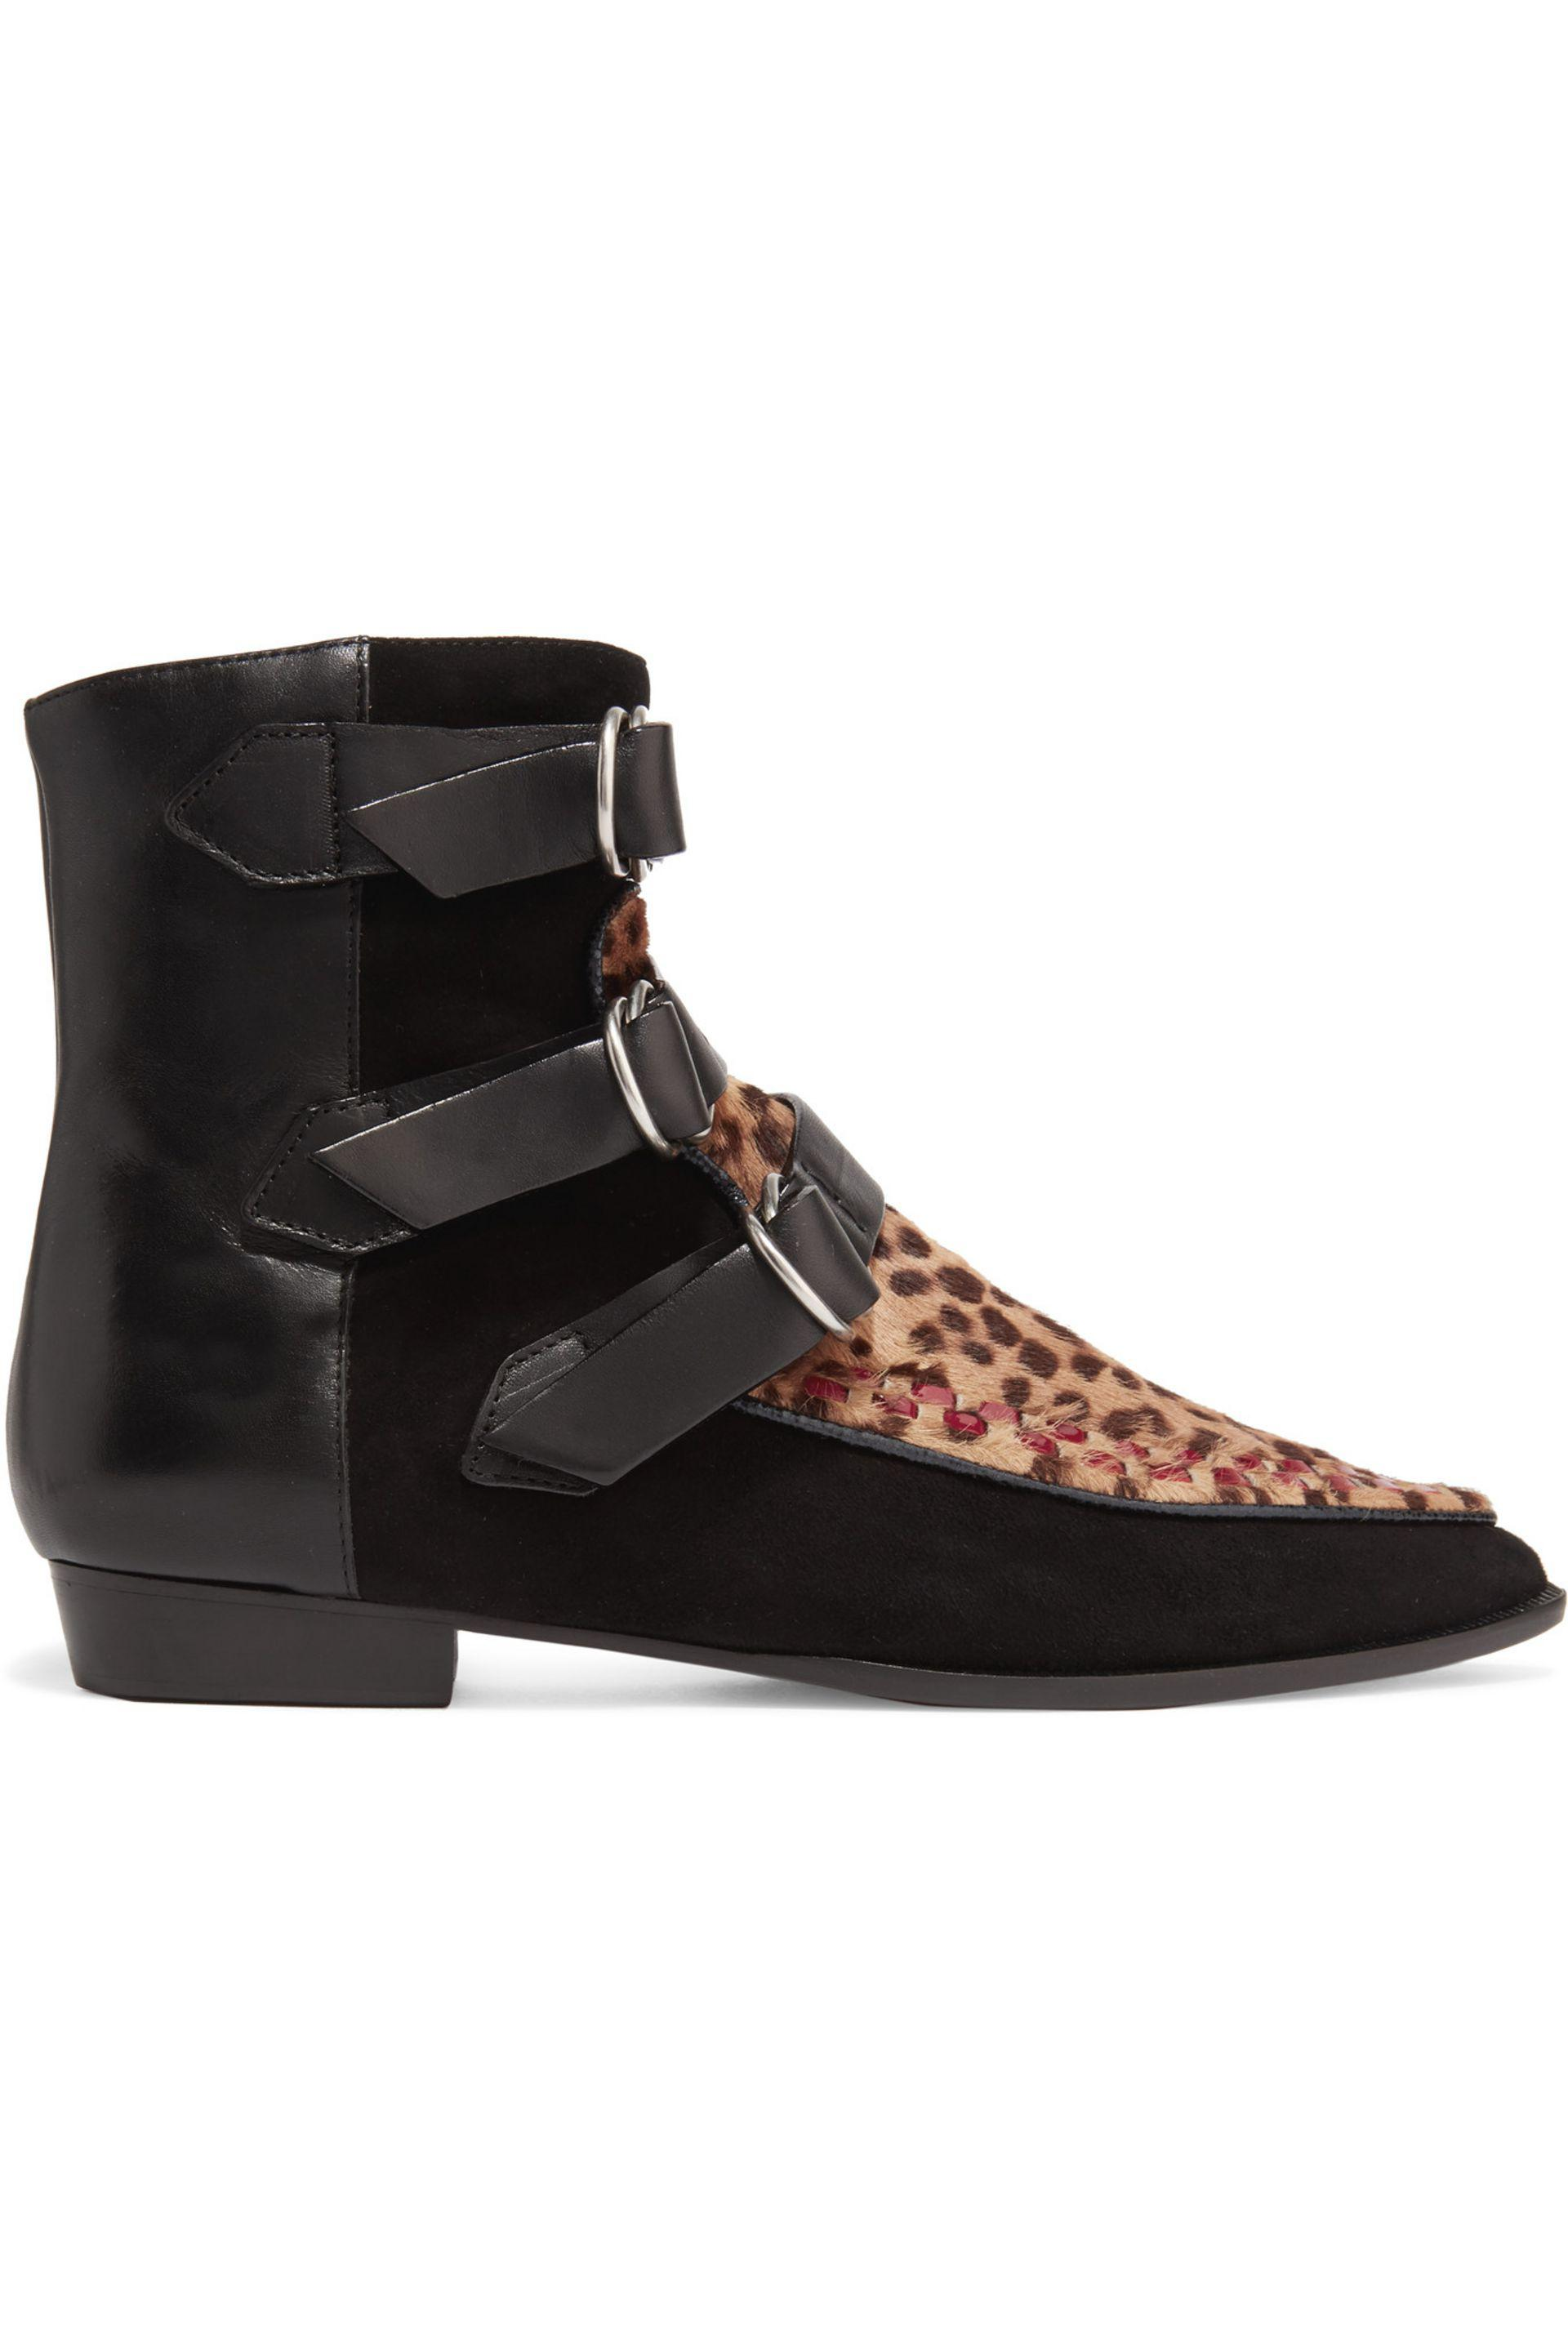 Isabel Marant Printed calf hair and suede ankle boots